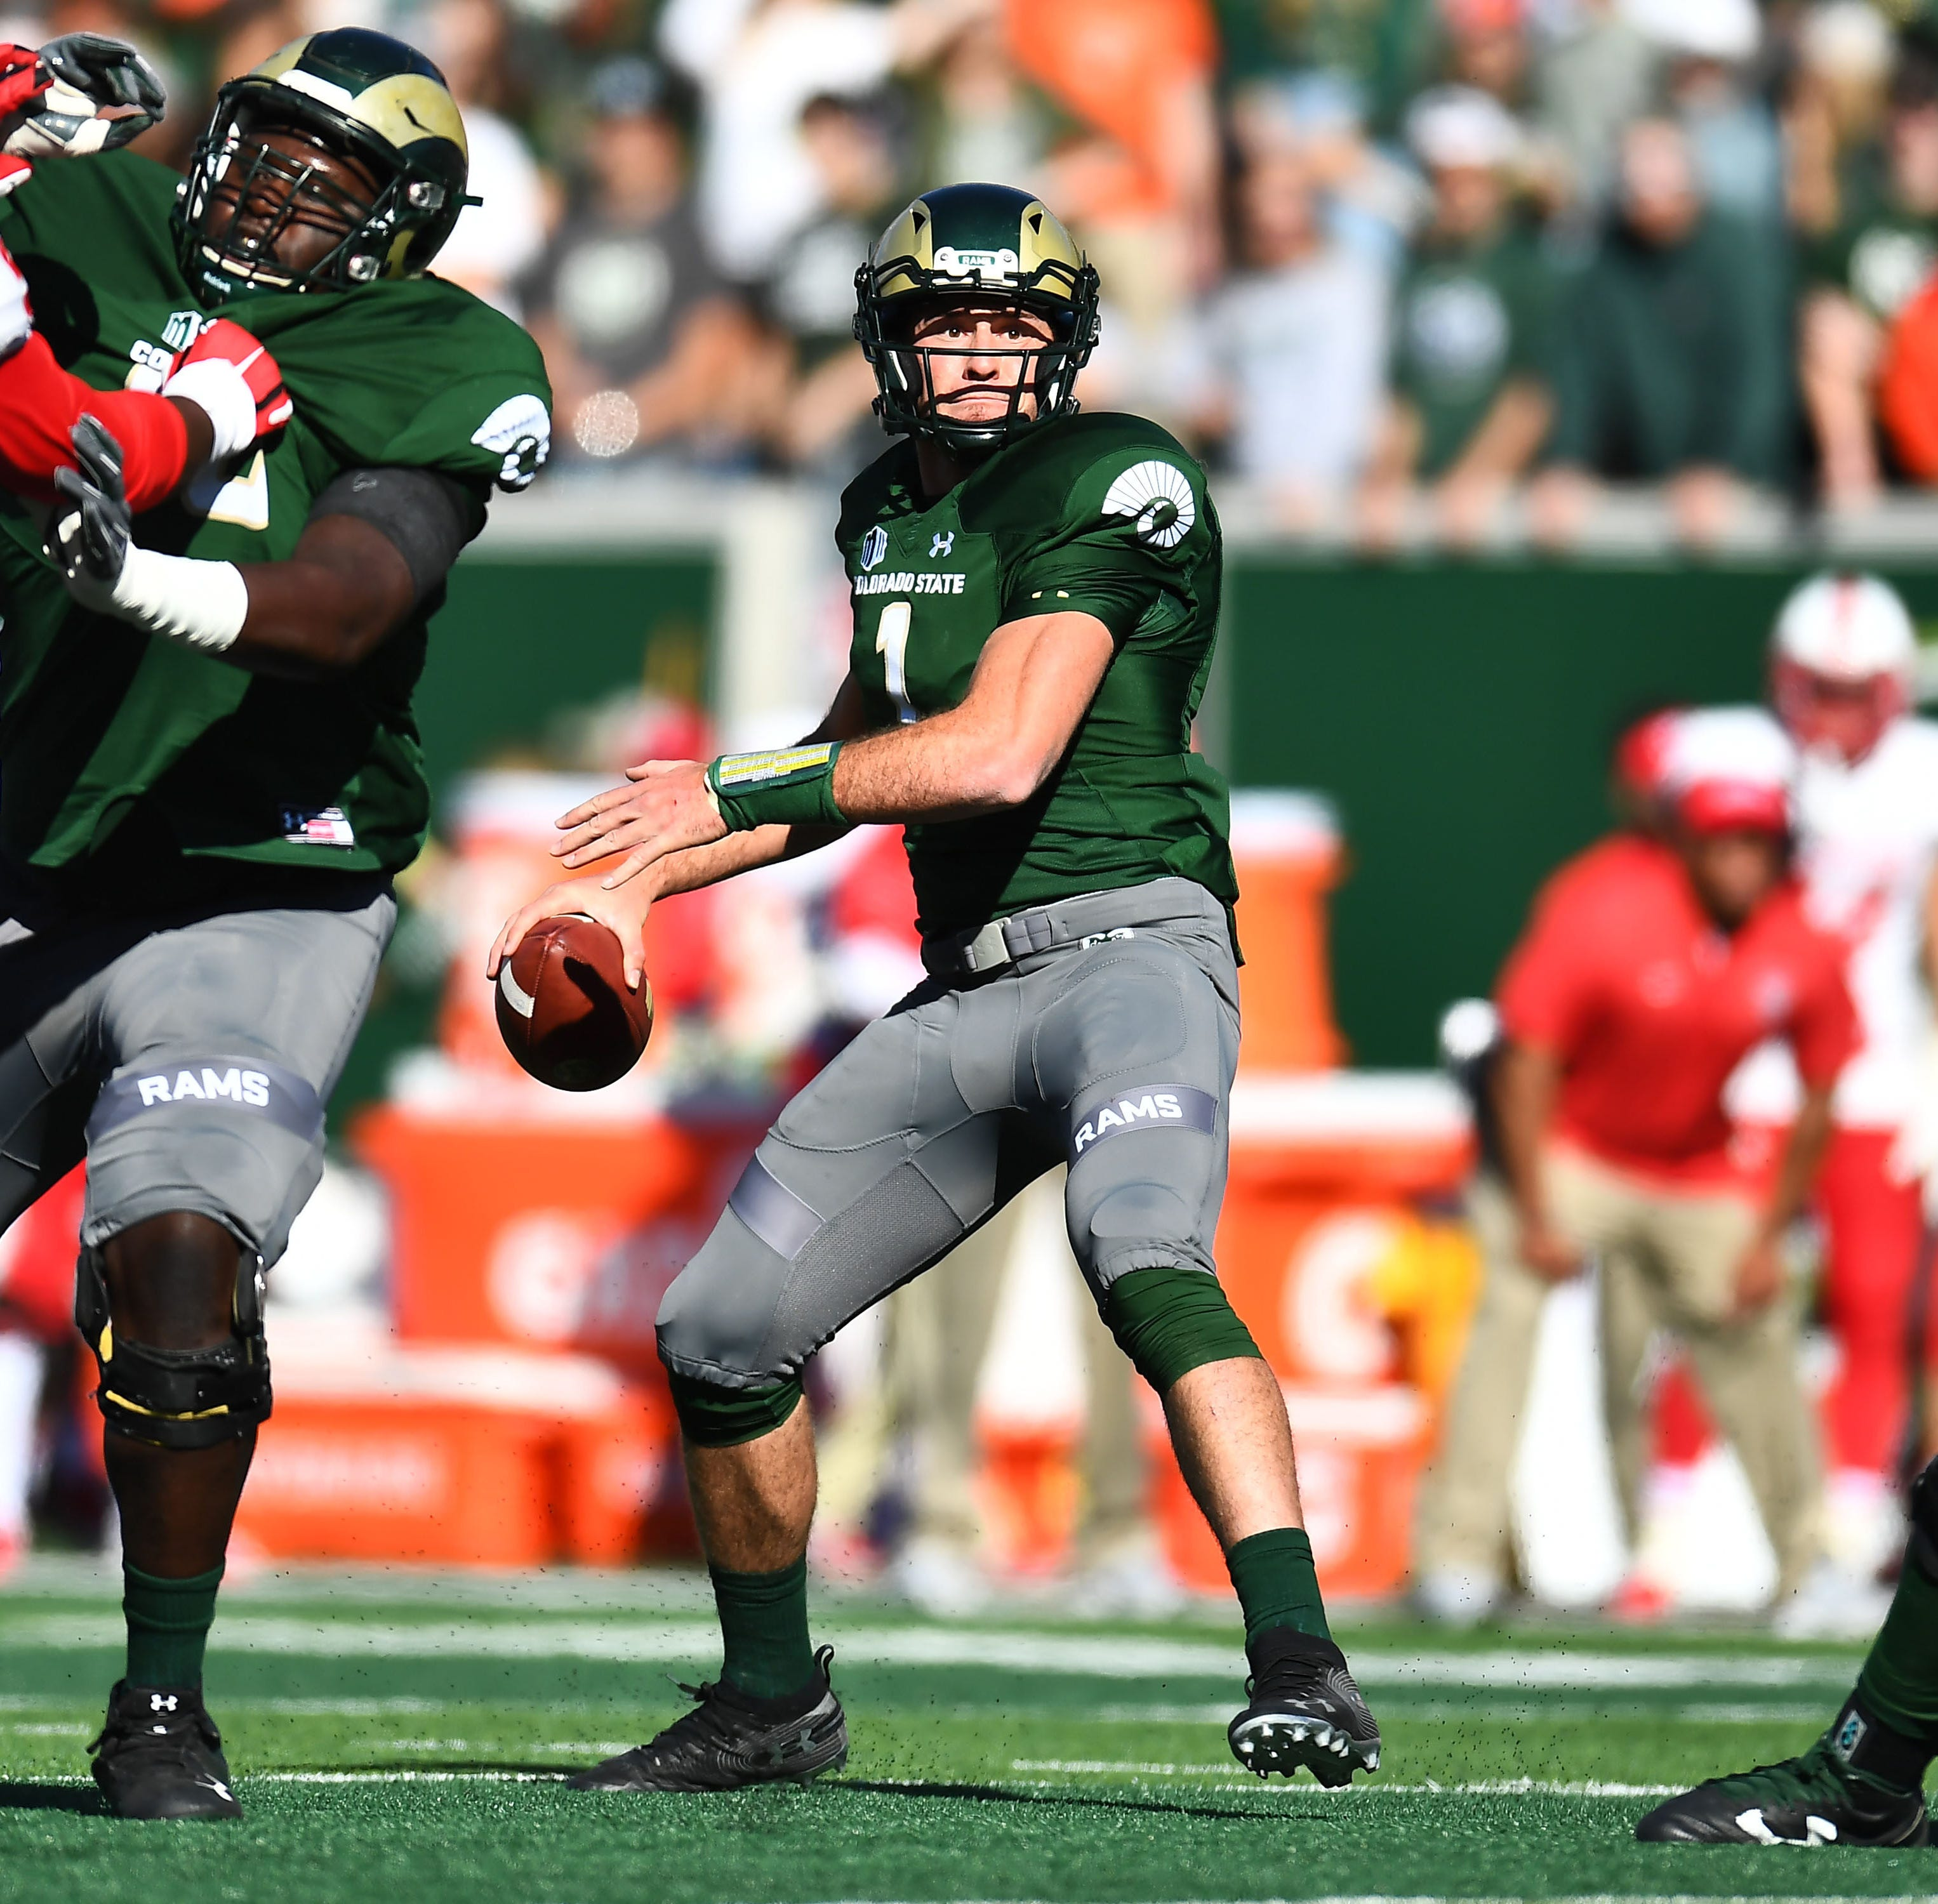 CSU football quarterback K.J. Carta-Samuels nearly chose Boise State